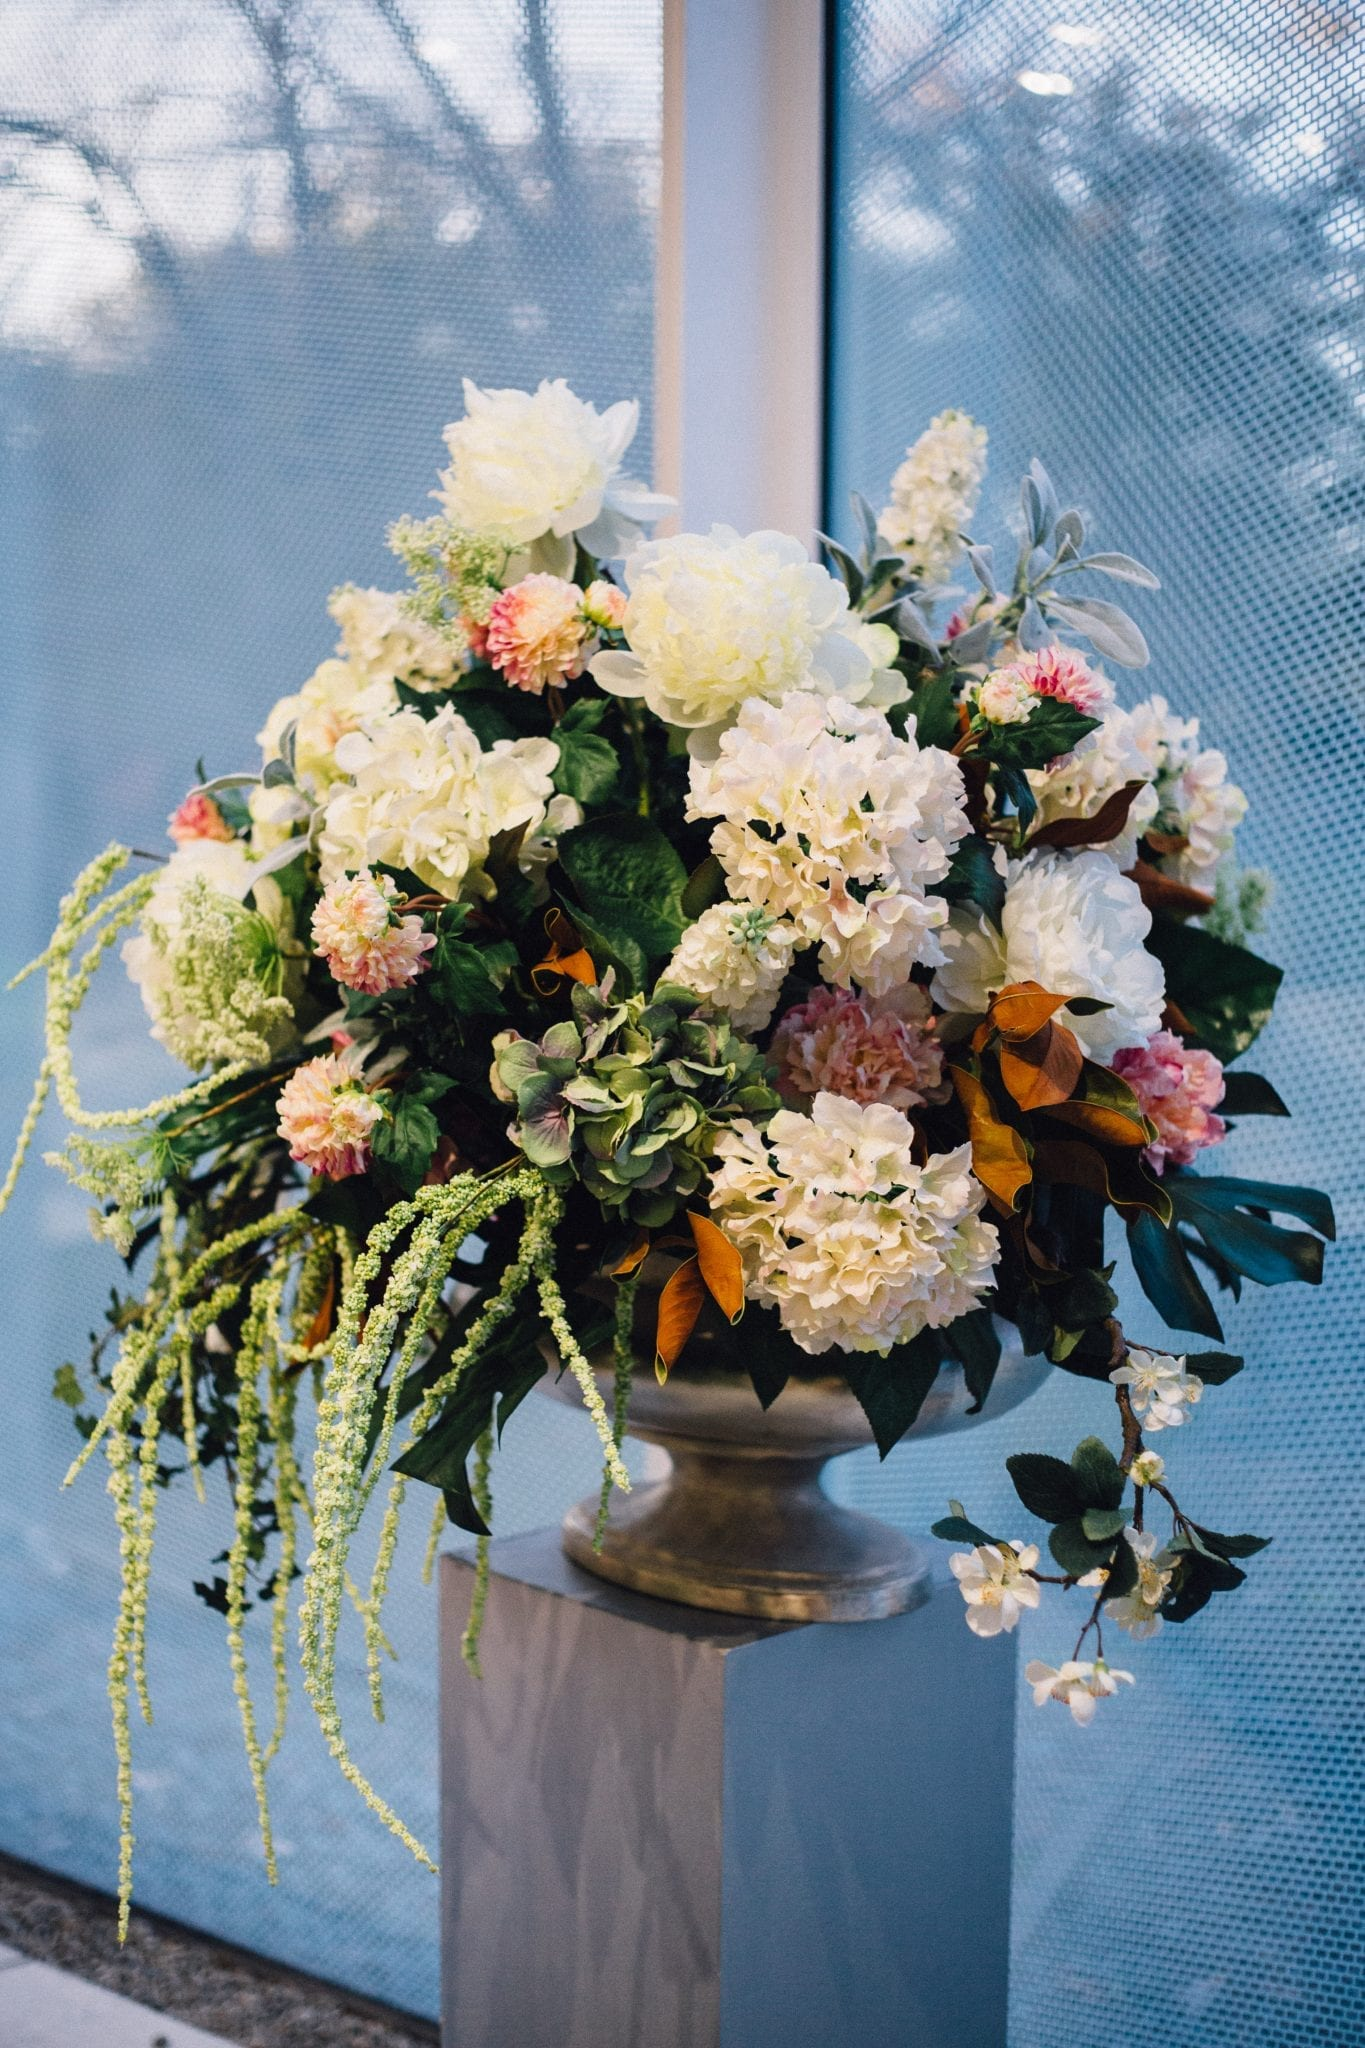 Blog christchurch event stylist florist benefits of using artificial flowers for events mightylinksfo